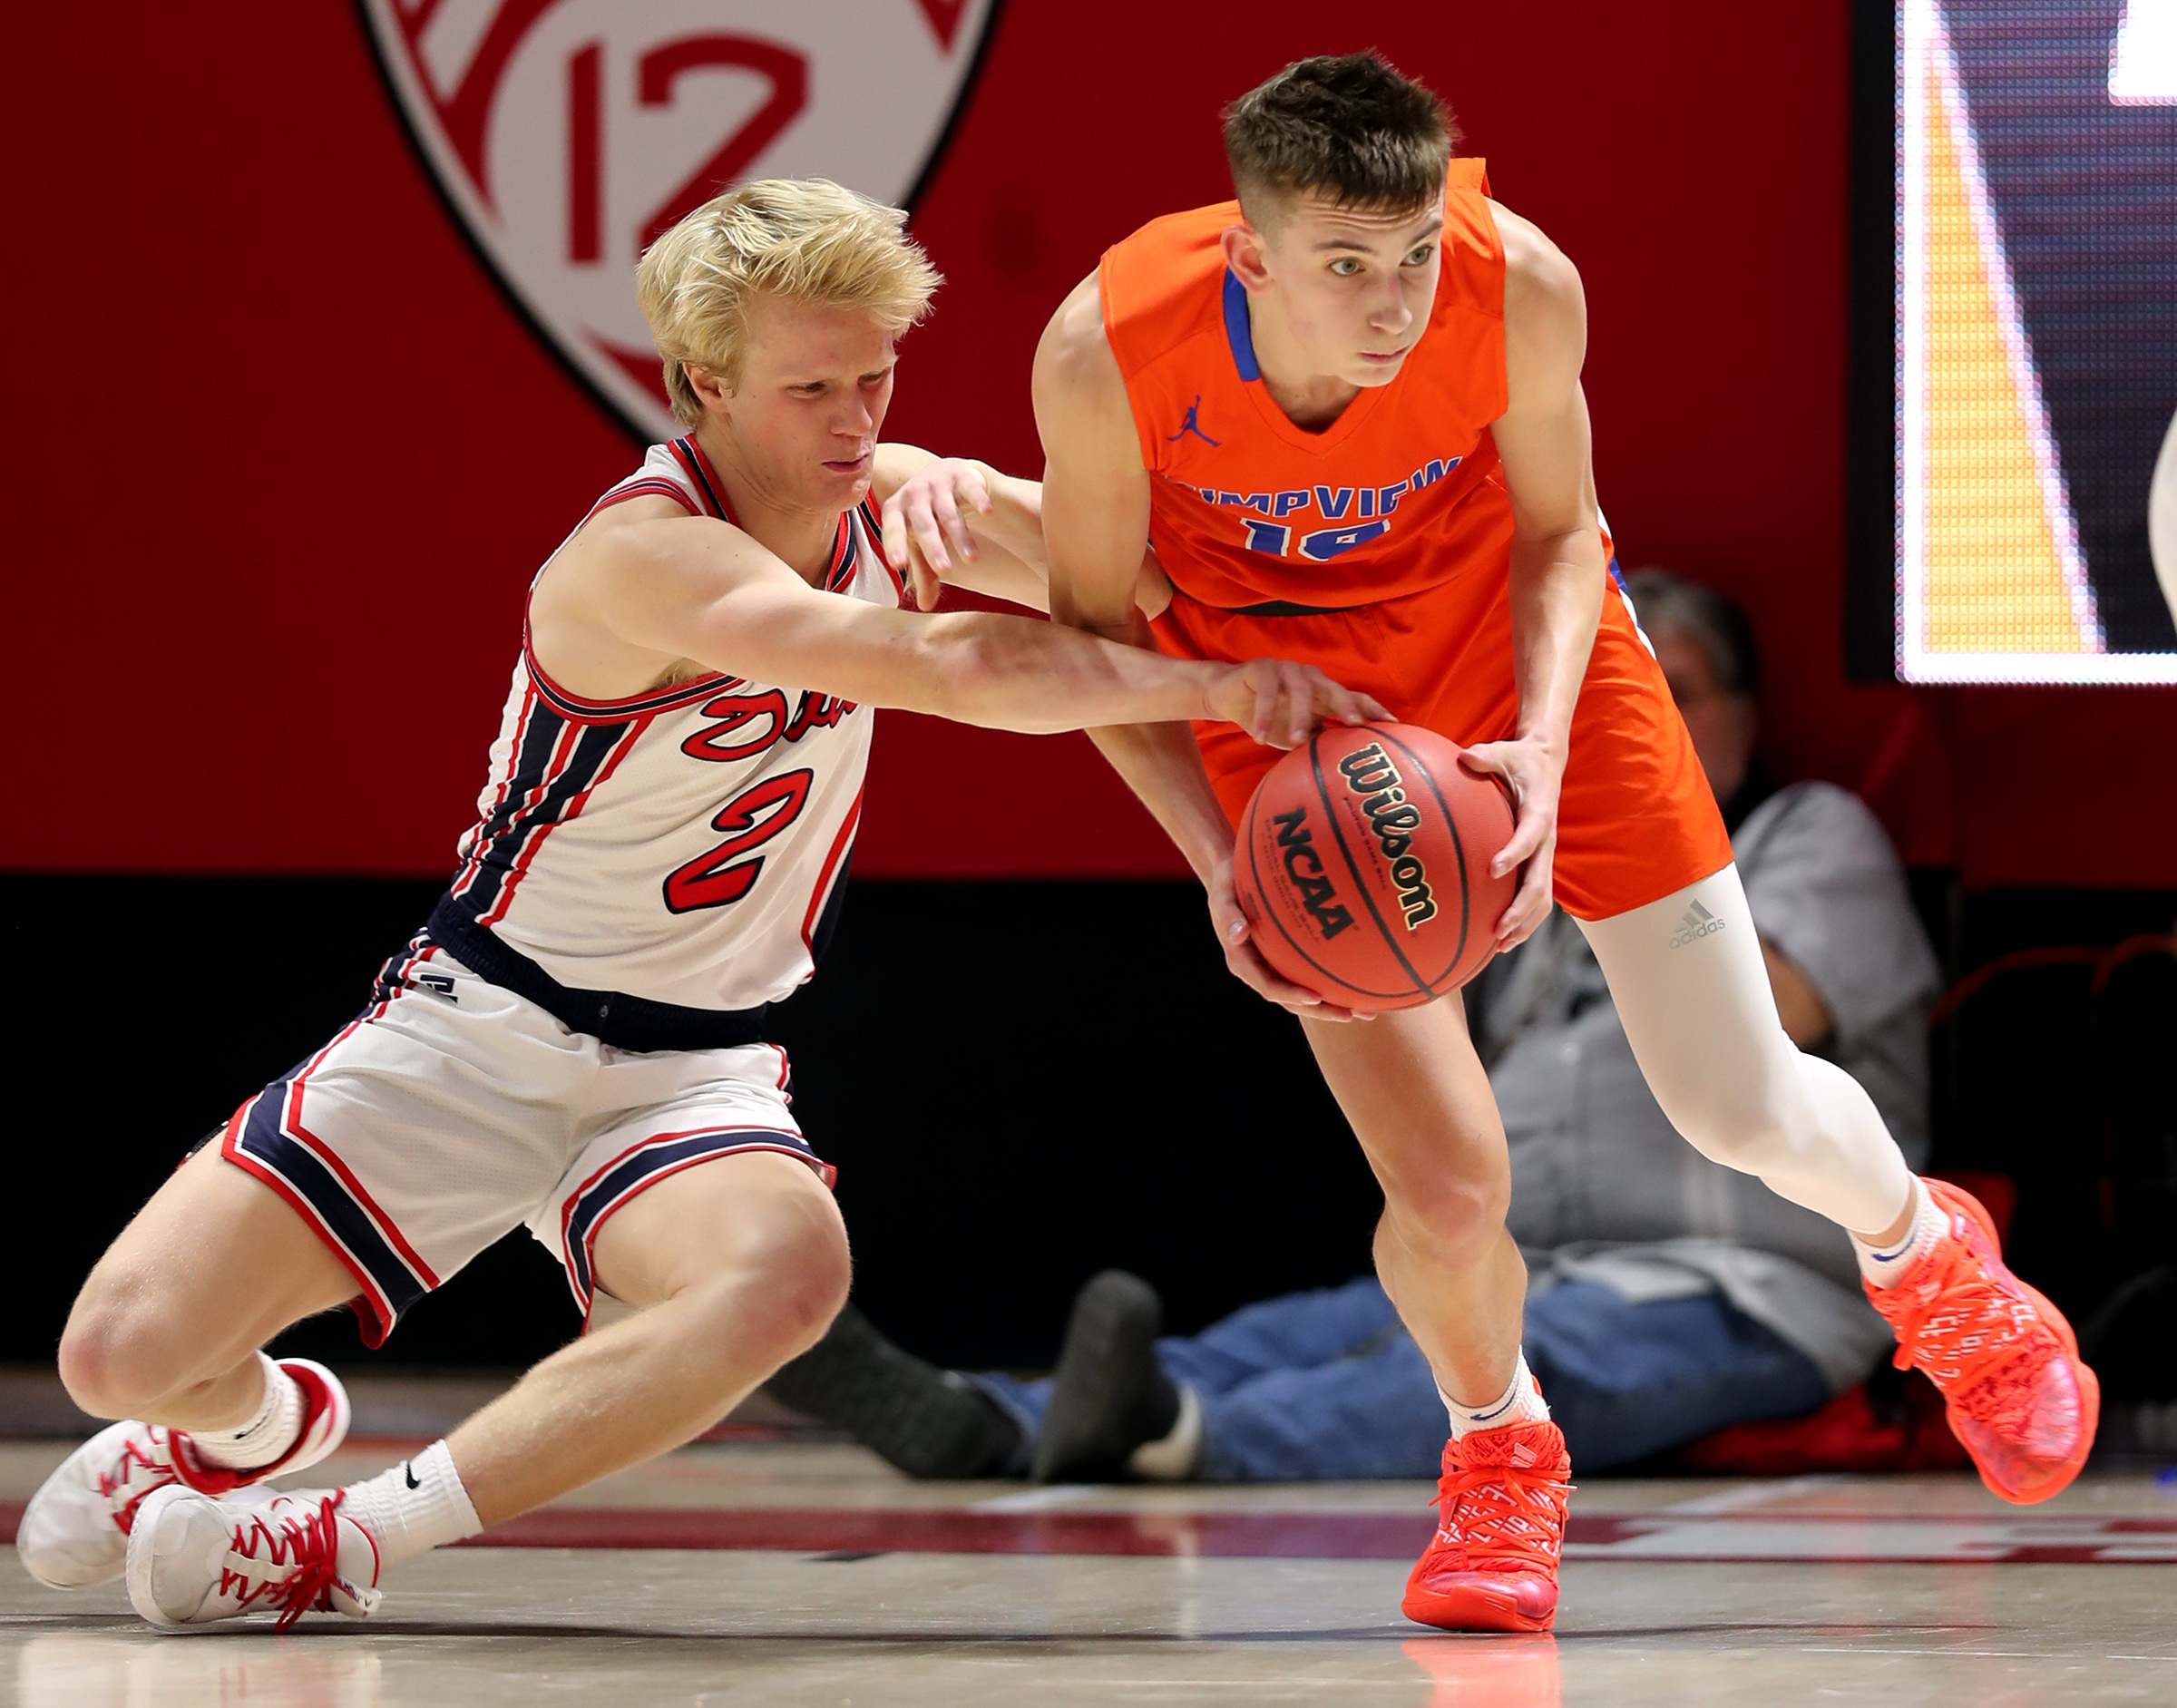 Springville's Austin Mortensen tries to knock the ball away from Timpview's Jake Wahlin as the two teams play in the 5A boys state basketball championship in the Huntsman Center in Salt Lake City on Saturday, Feb. 29, 2020. Springville won 66-53.